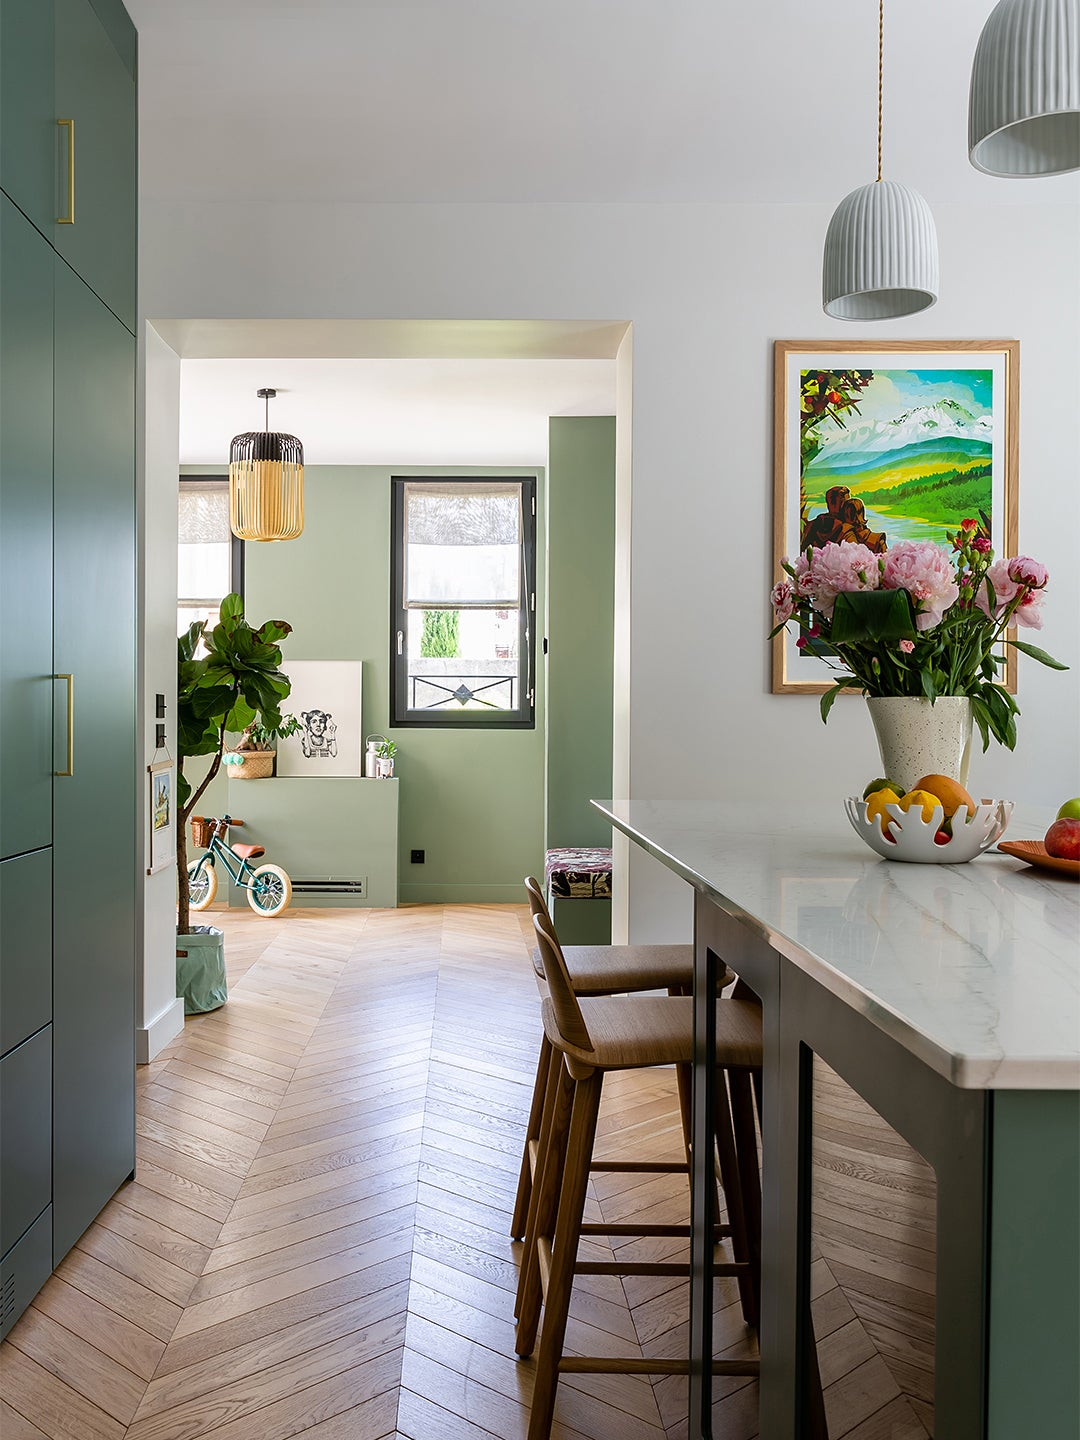 00-FEATURE-olive-green-kitchen-cabinets-domino